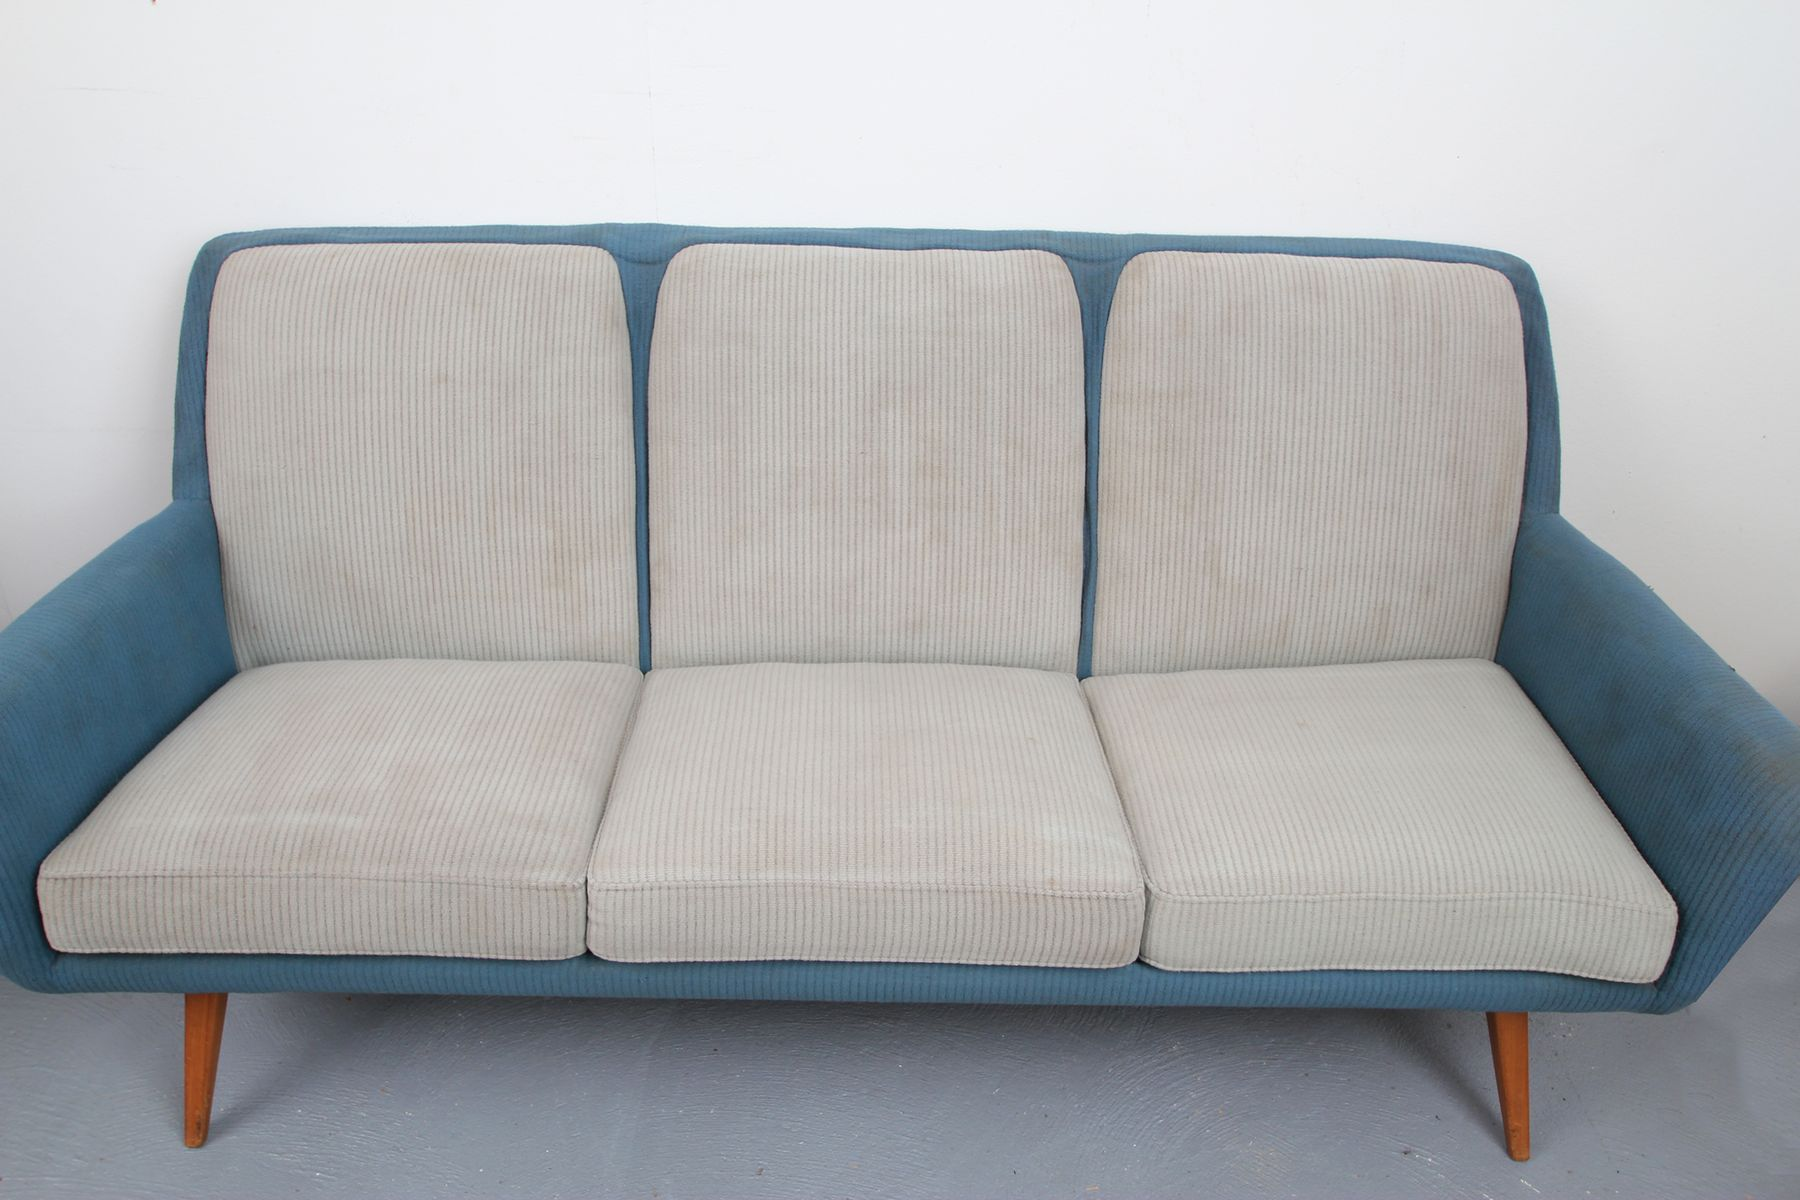 Sofa in pigeon blue light gray 1950s for sale at pamono for Blue sofas for sale